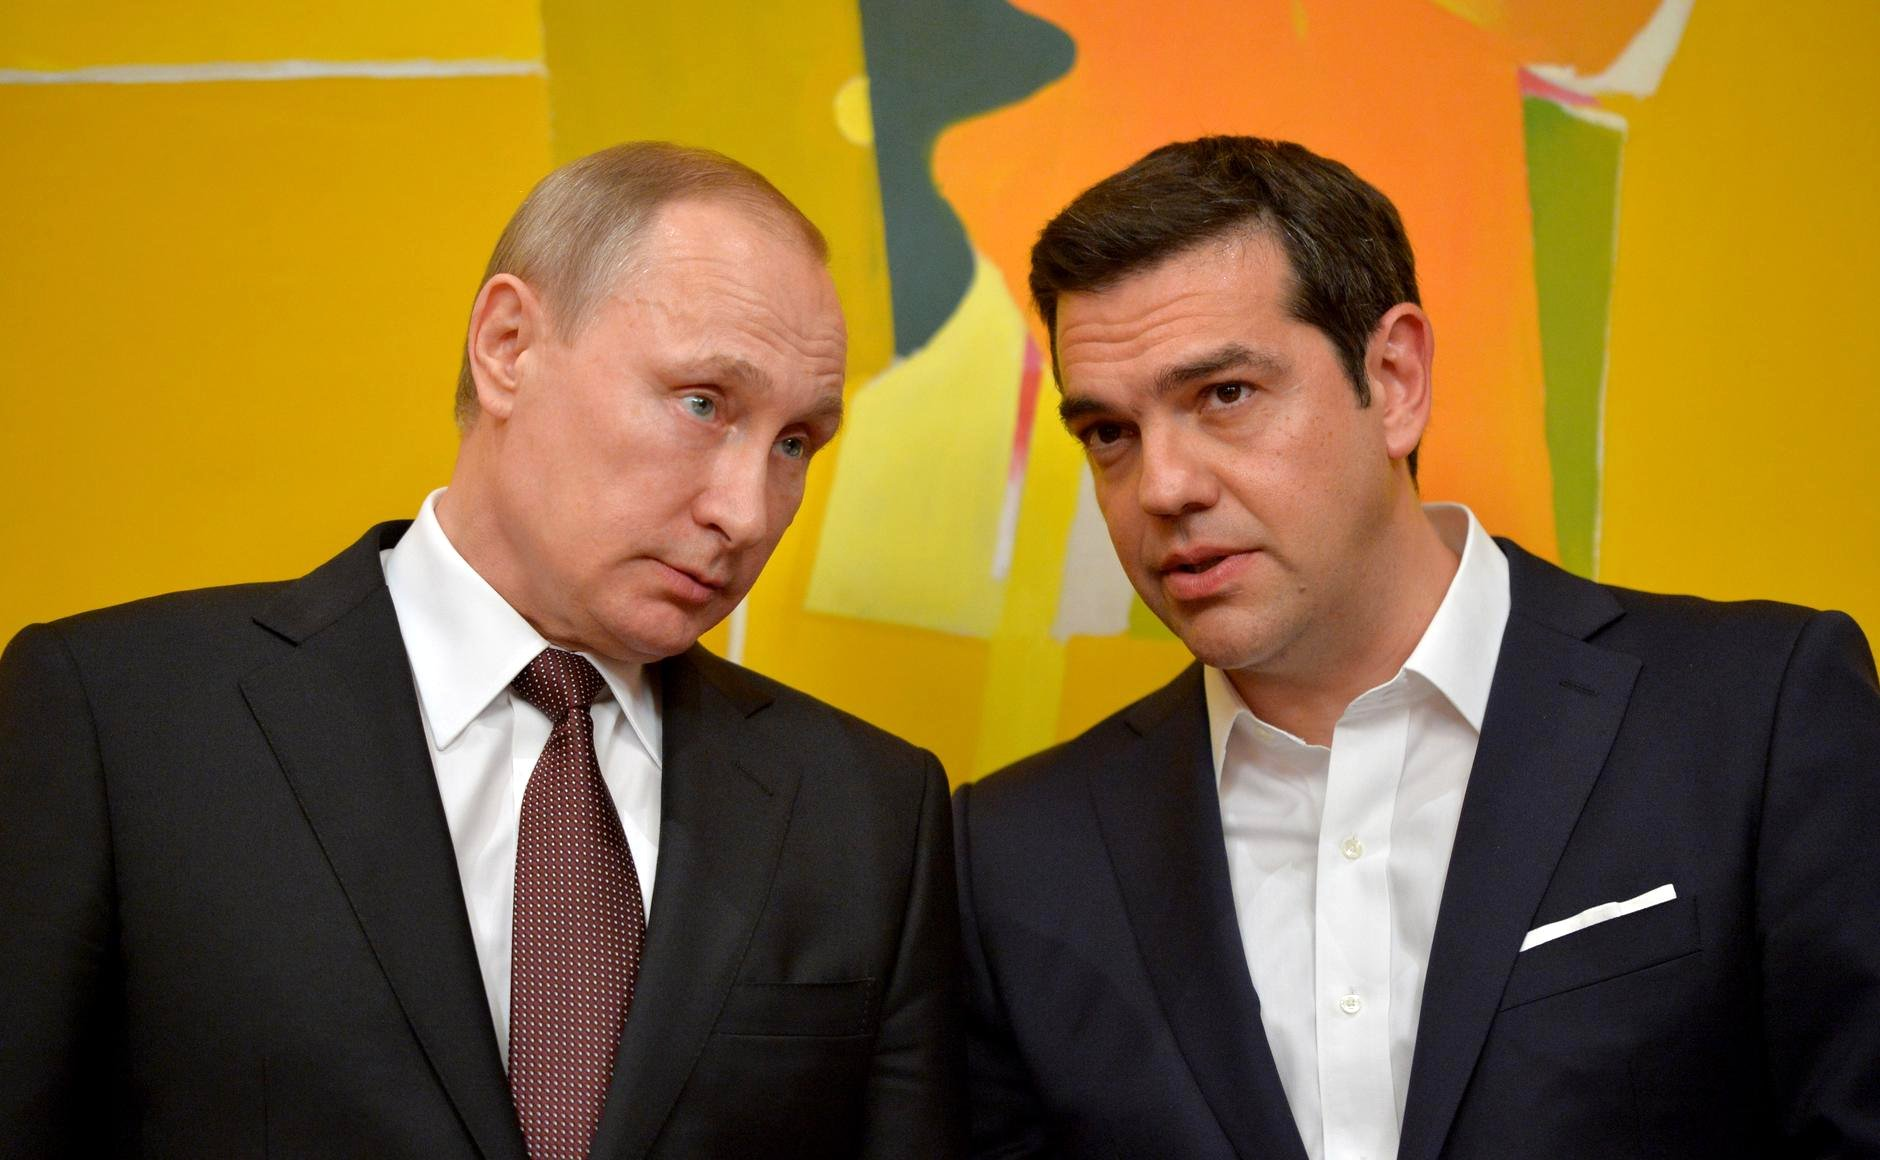 Putin called Tsipras and Pavlopoulos to thank them for the hospitality